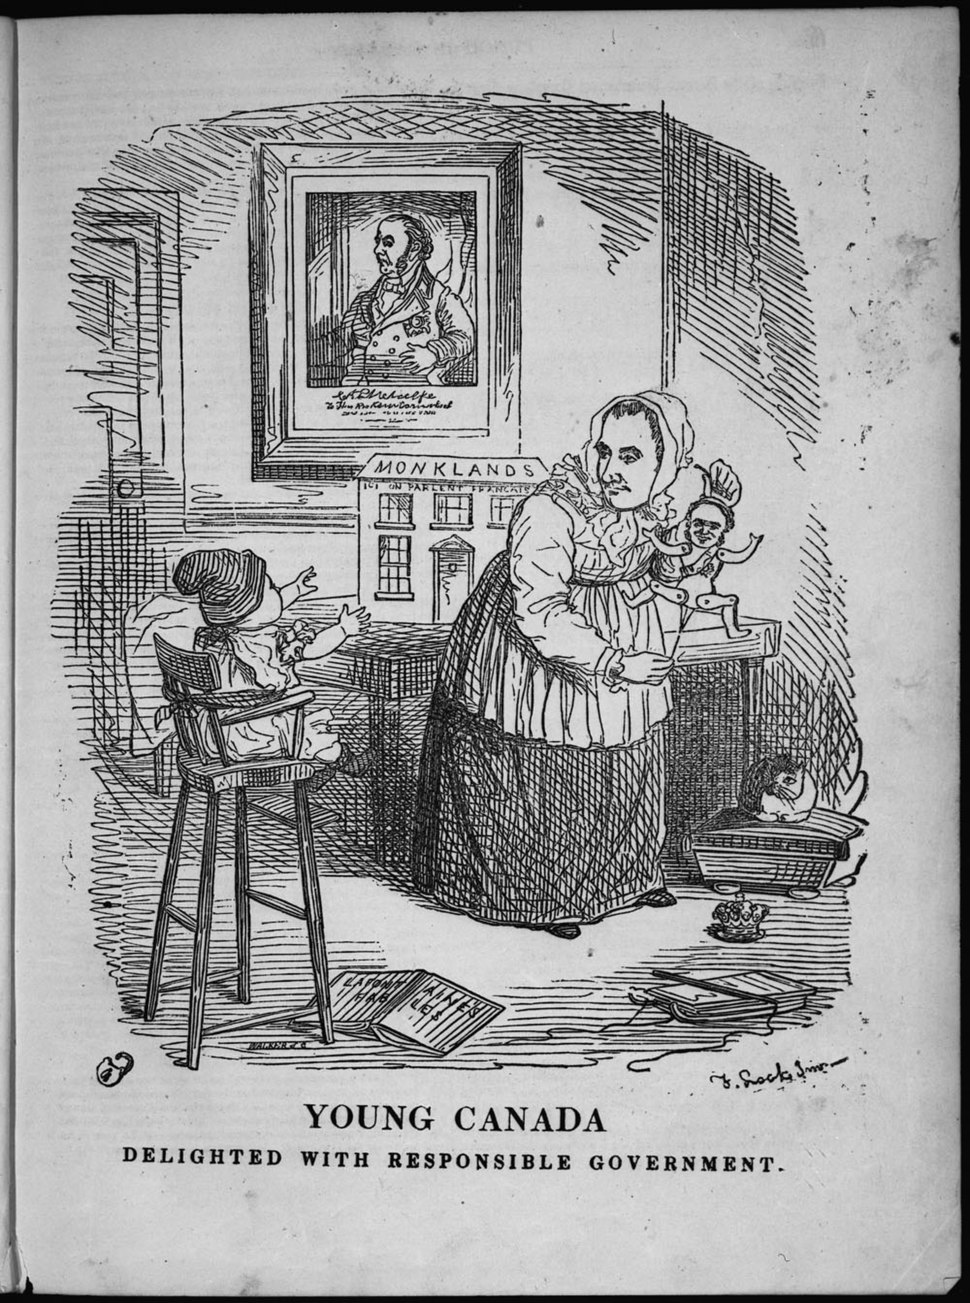 Young Canada Delighted with Responsible Government c092201-v8